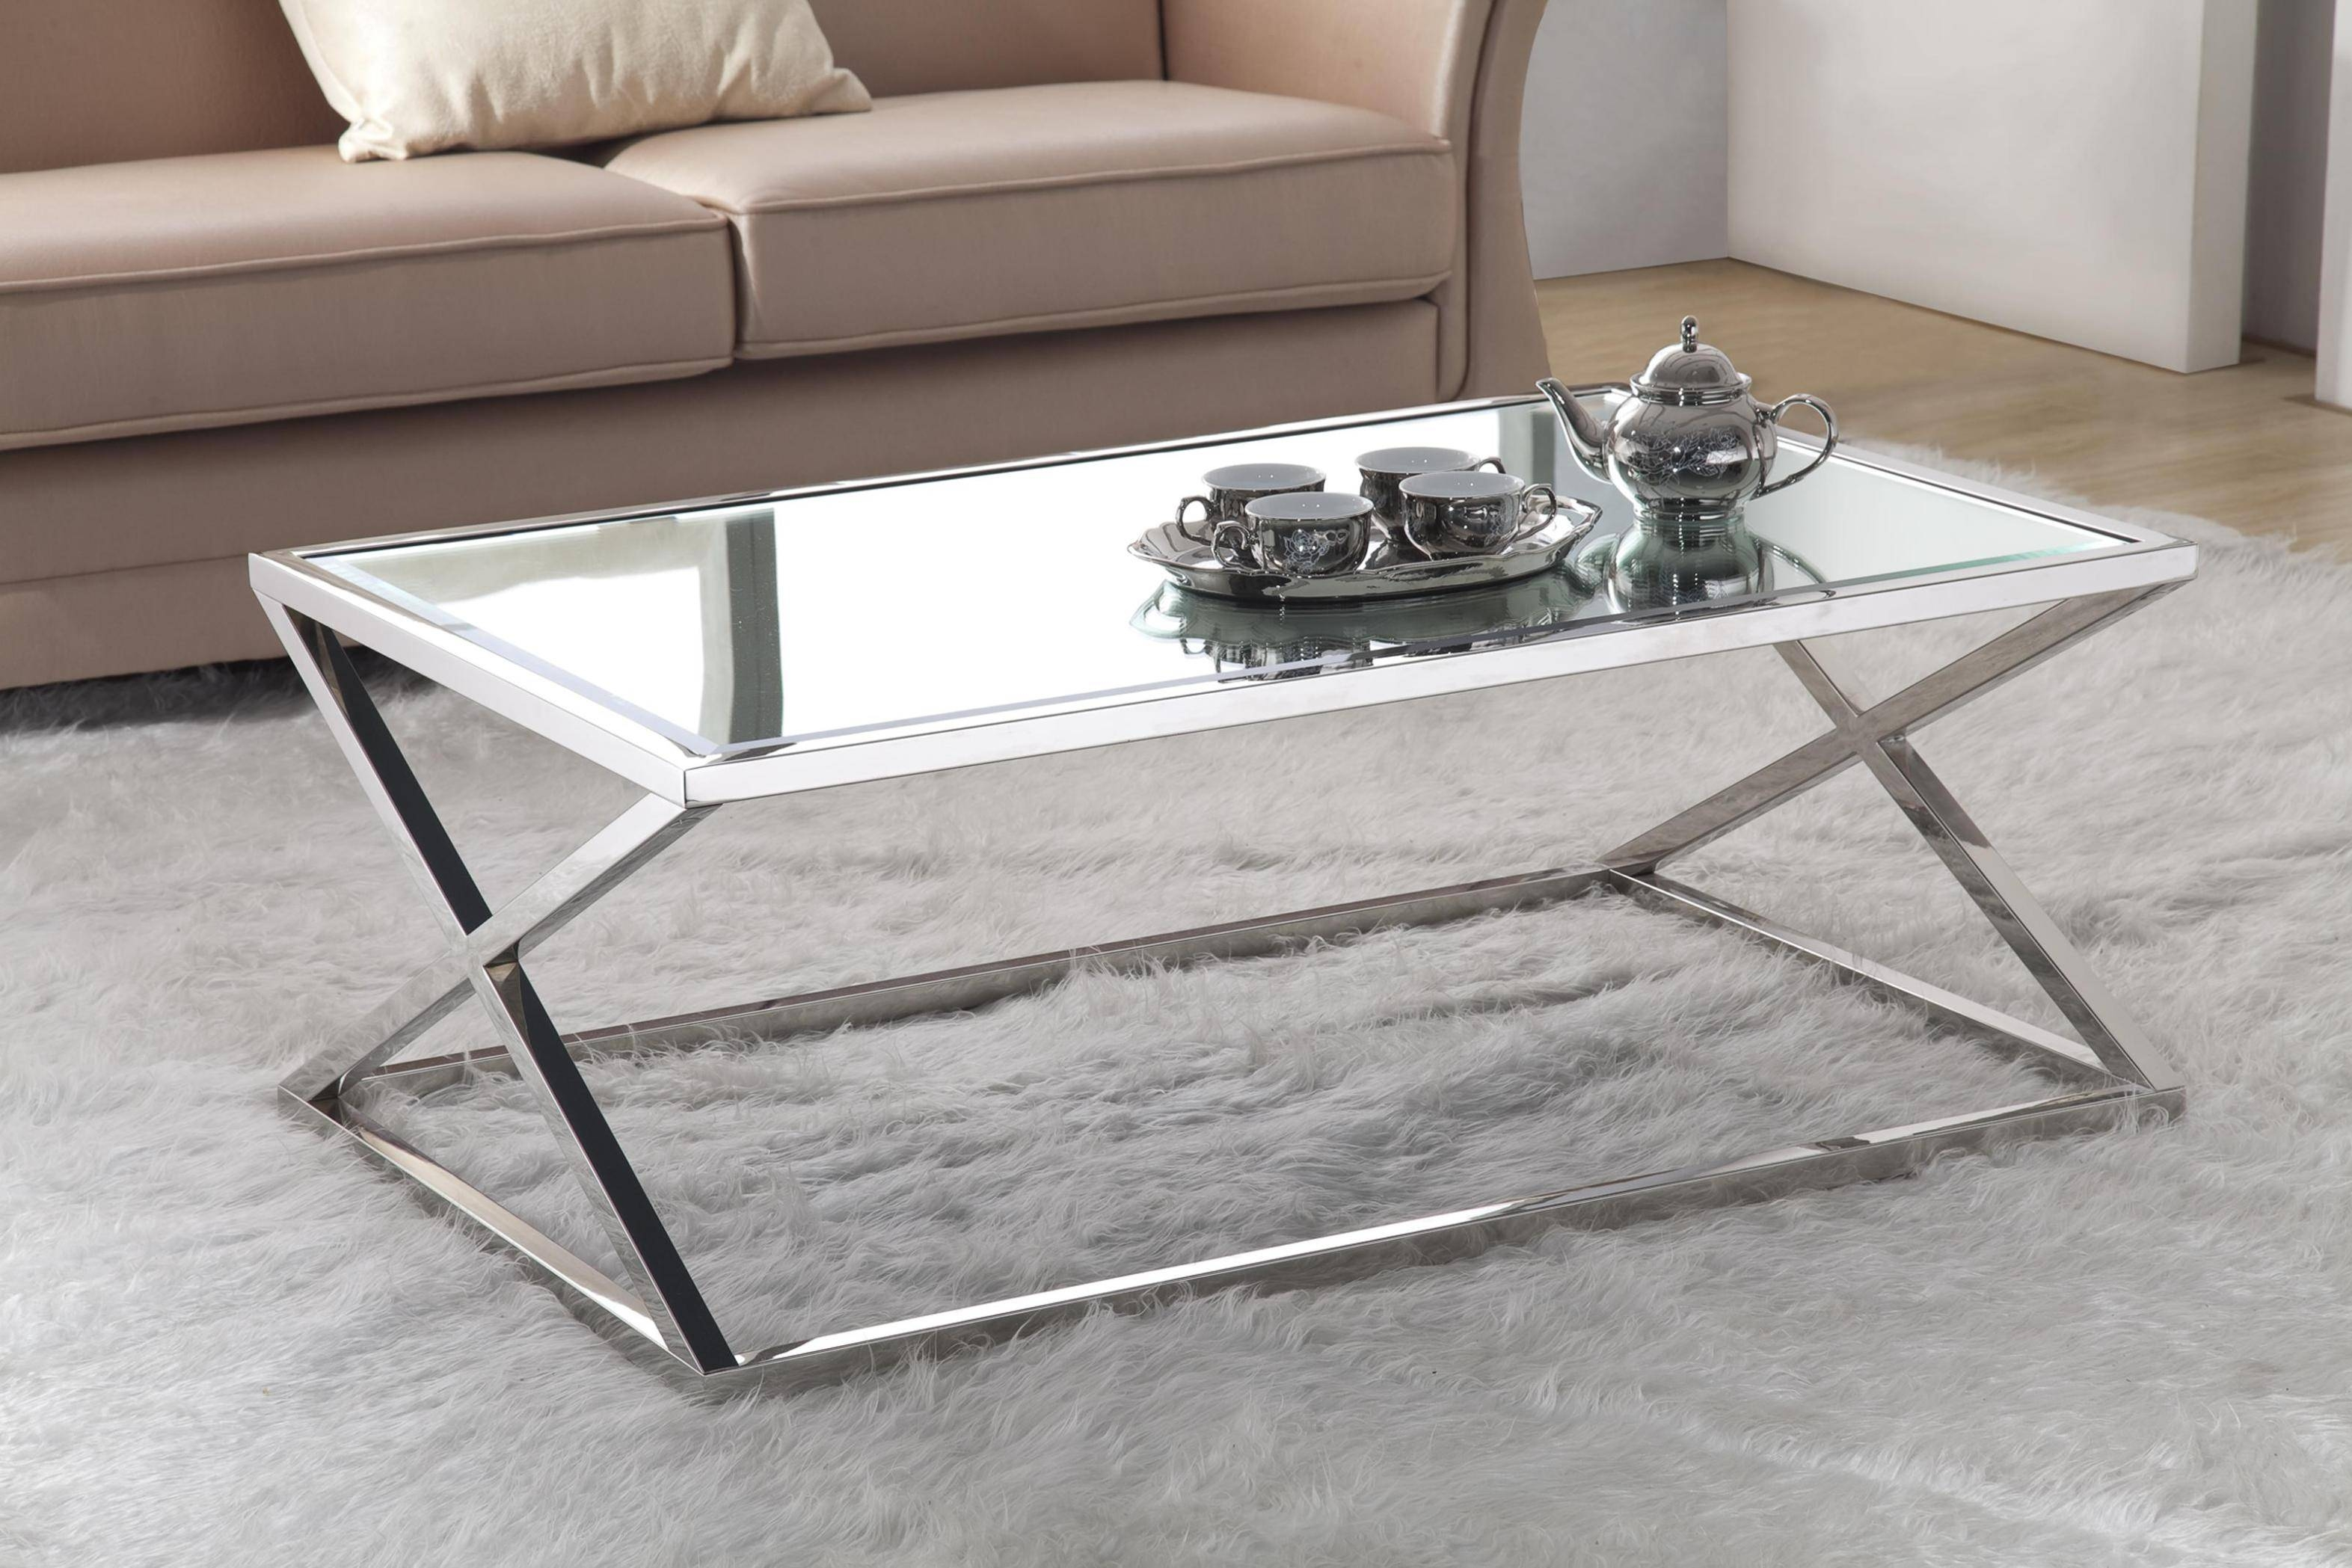 Coffee Table With Glass Top In Chrome Finish | Coffee Tables intended for Chrome And Wood Coffee Tables (Image 8 of 30)